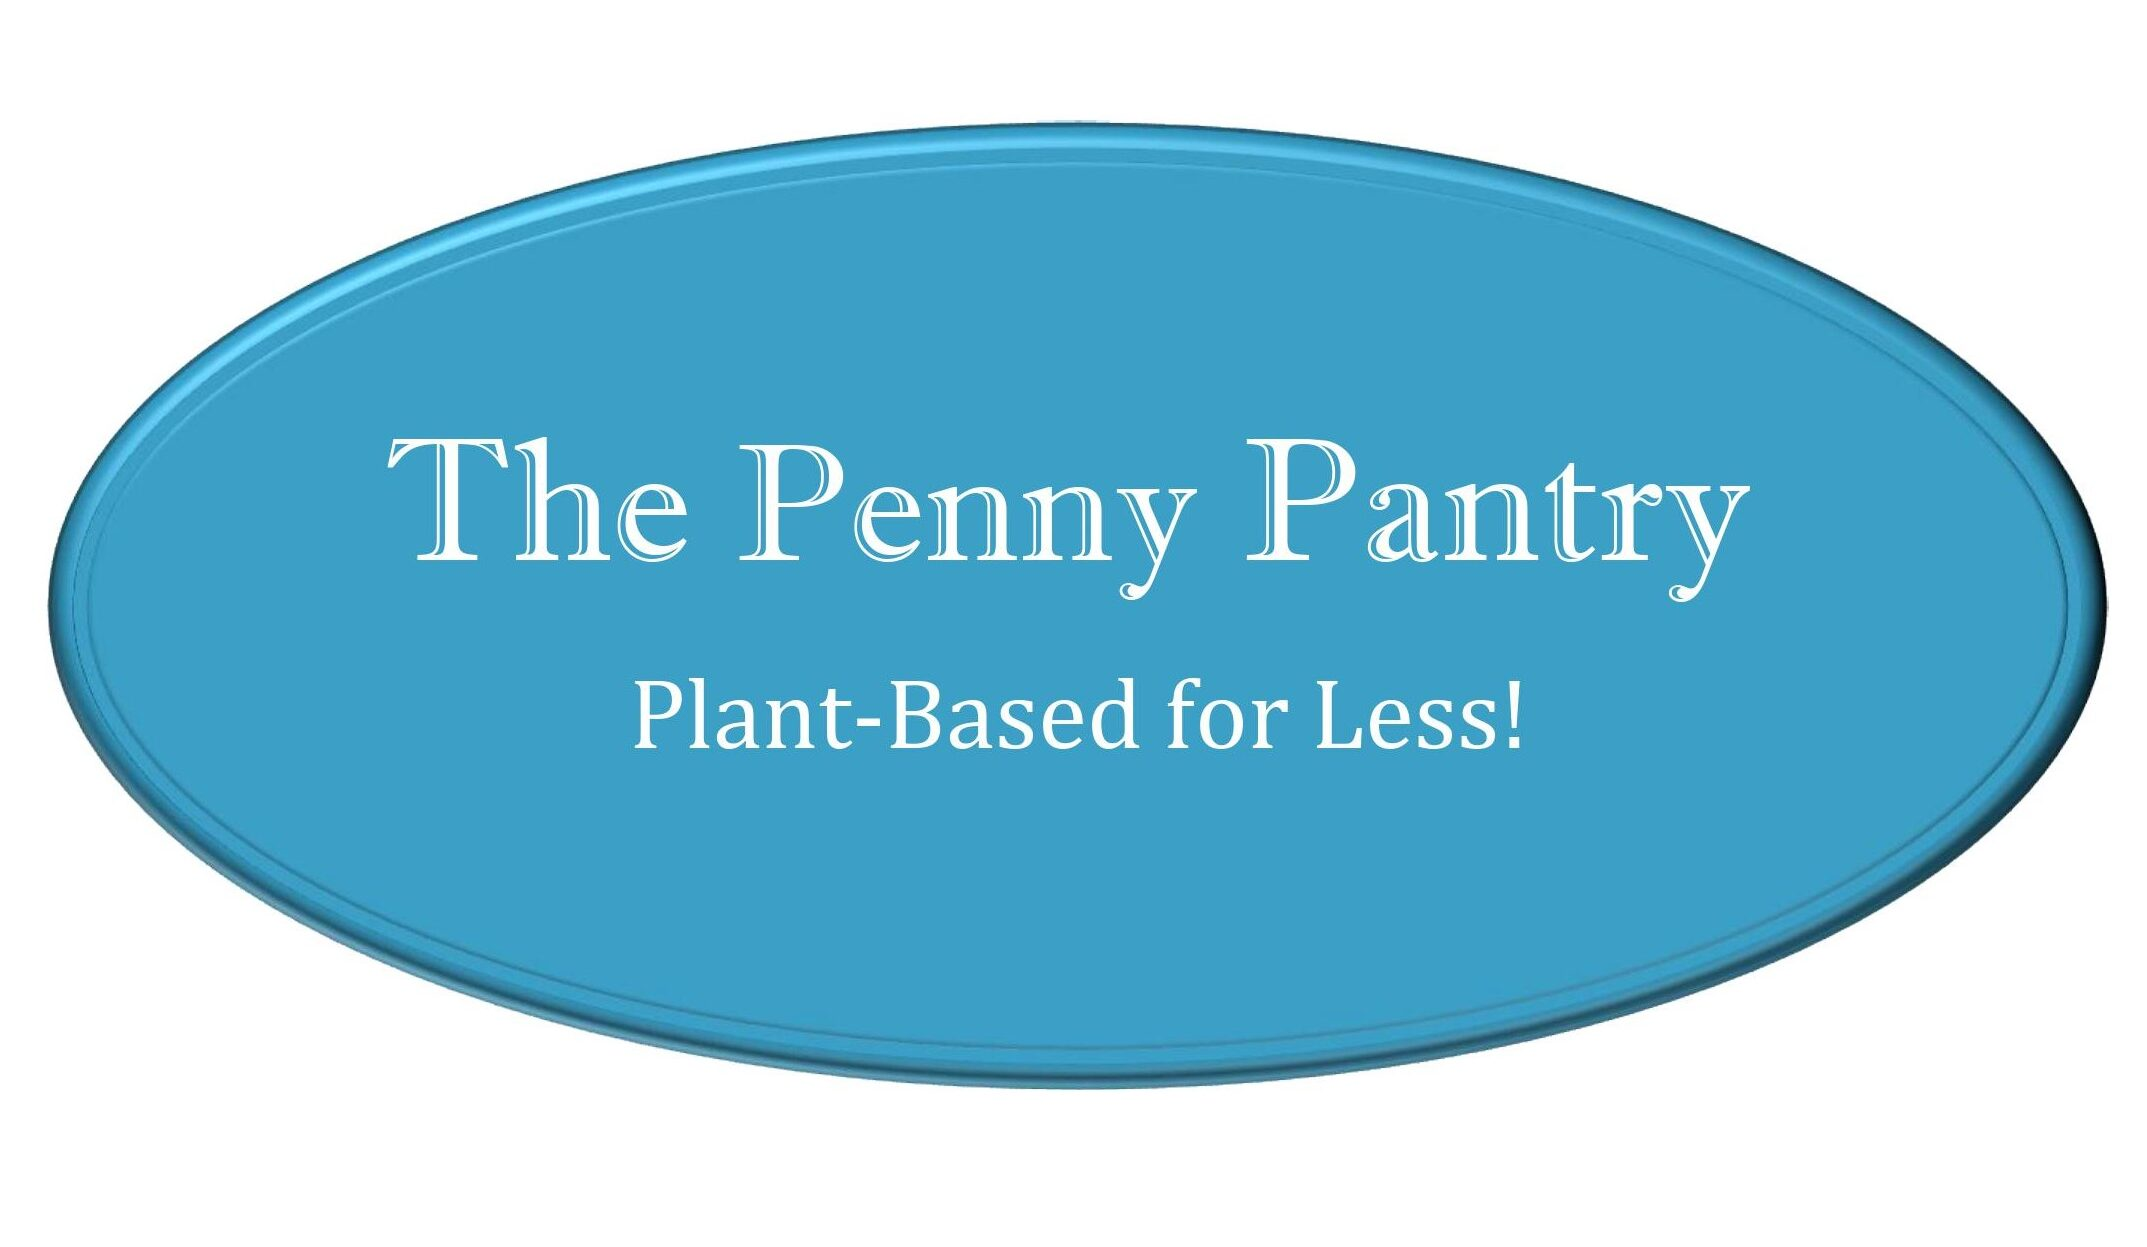 the penny pantry logo, also says plant based for less